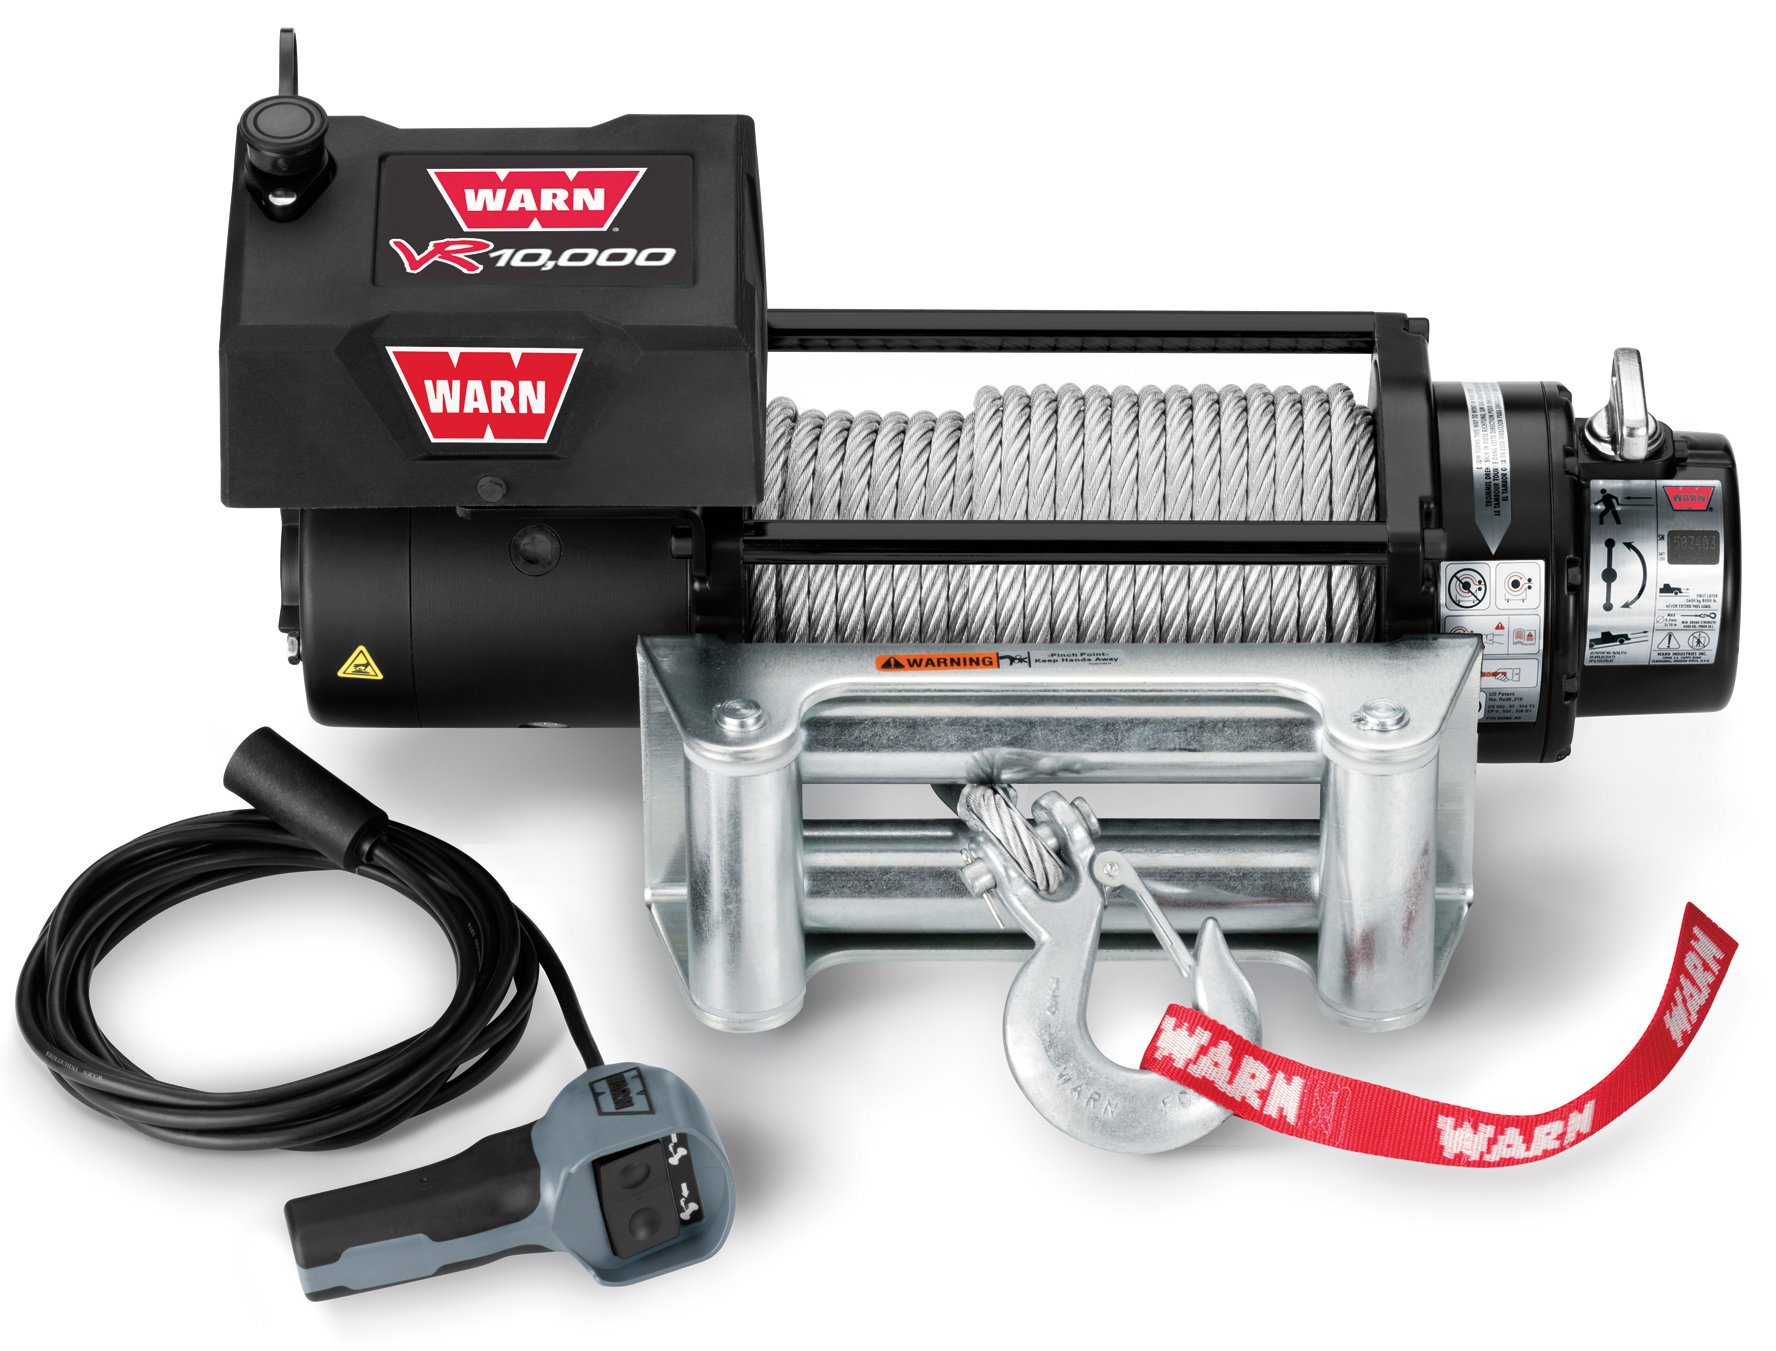 warn winch wiring diagram a2000 2004 chevy venture radio 86255 vr10000 with 94 39 wire rope and roller